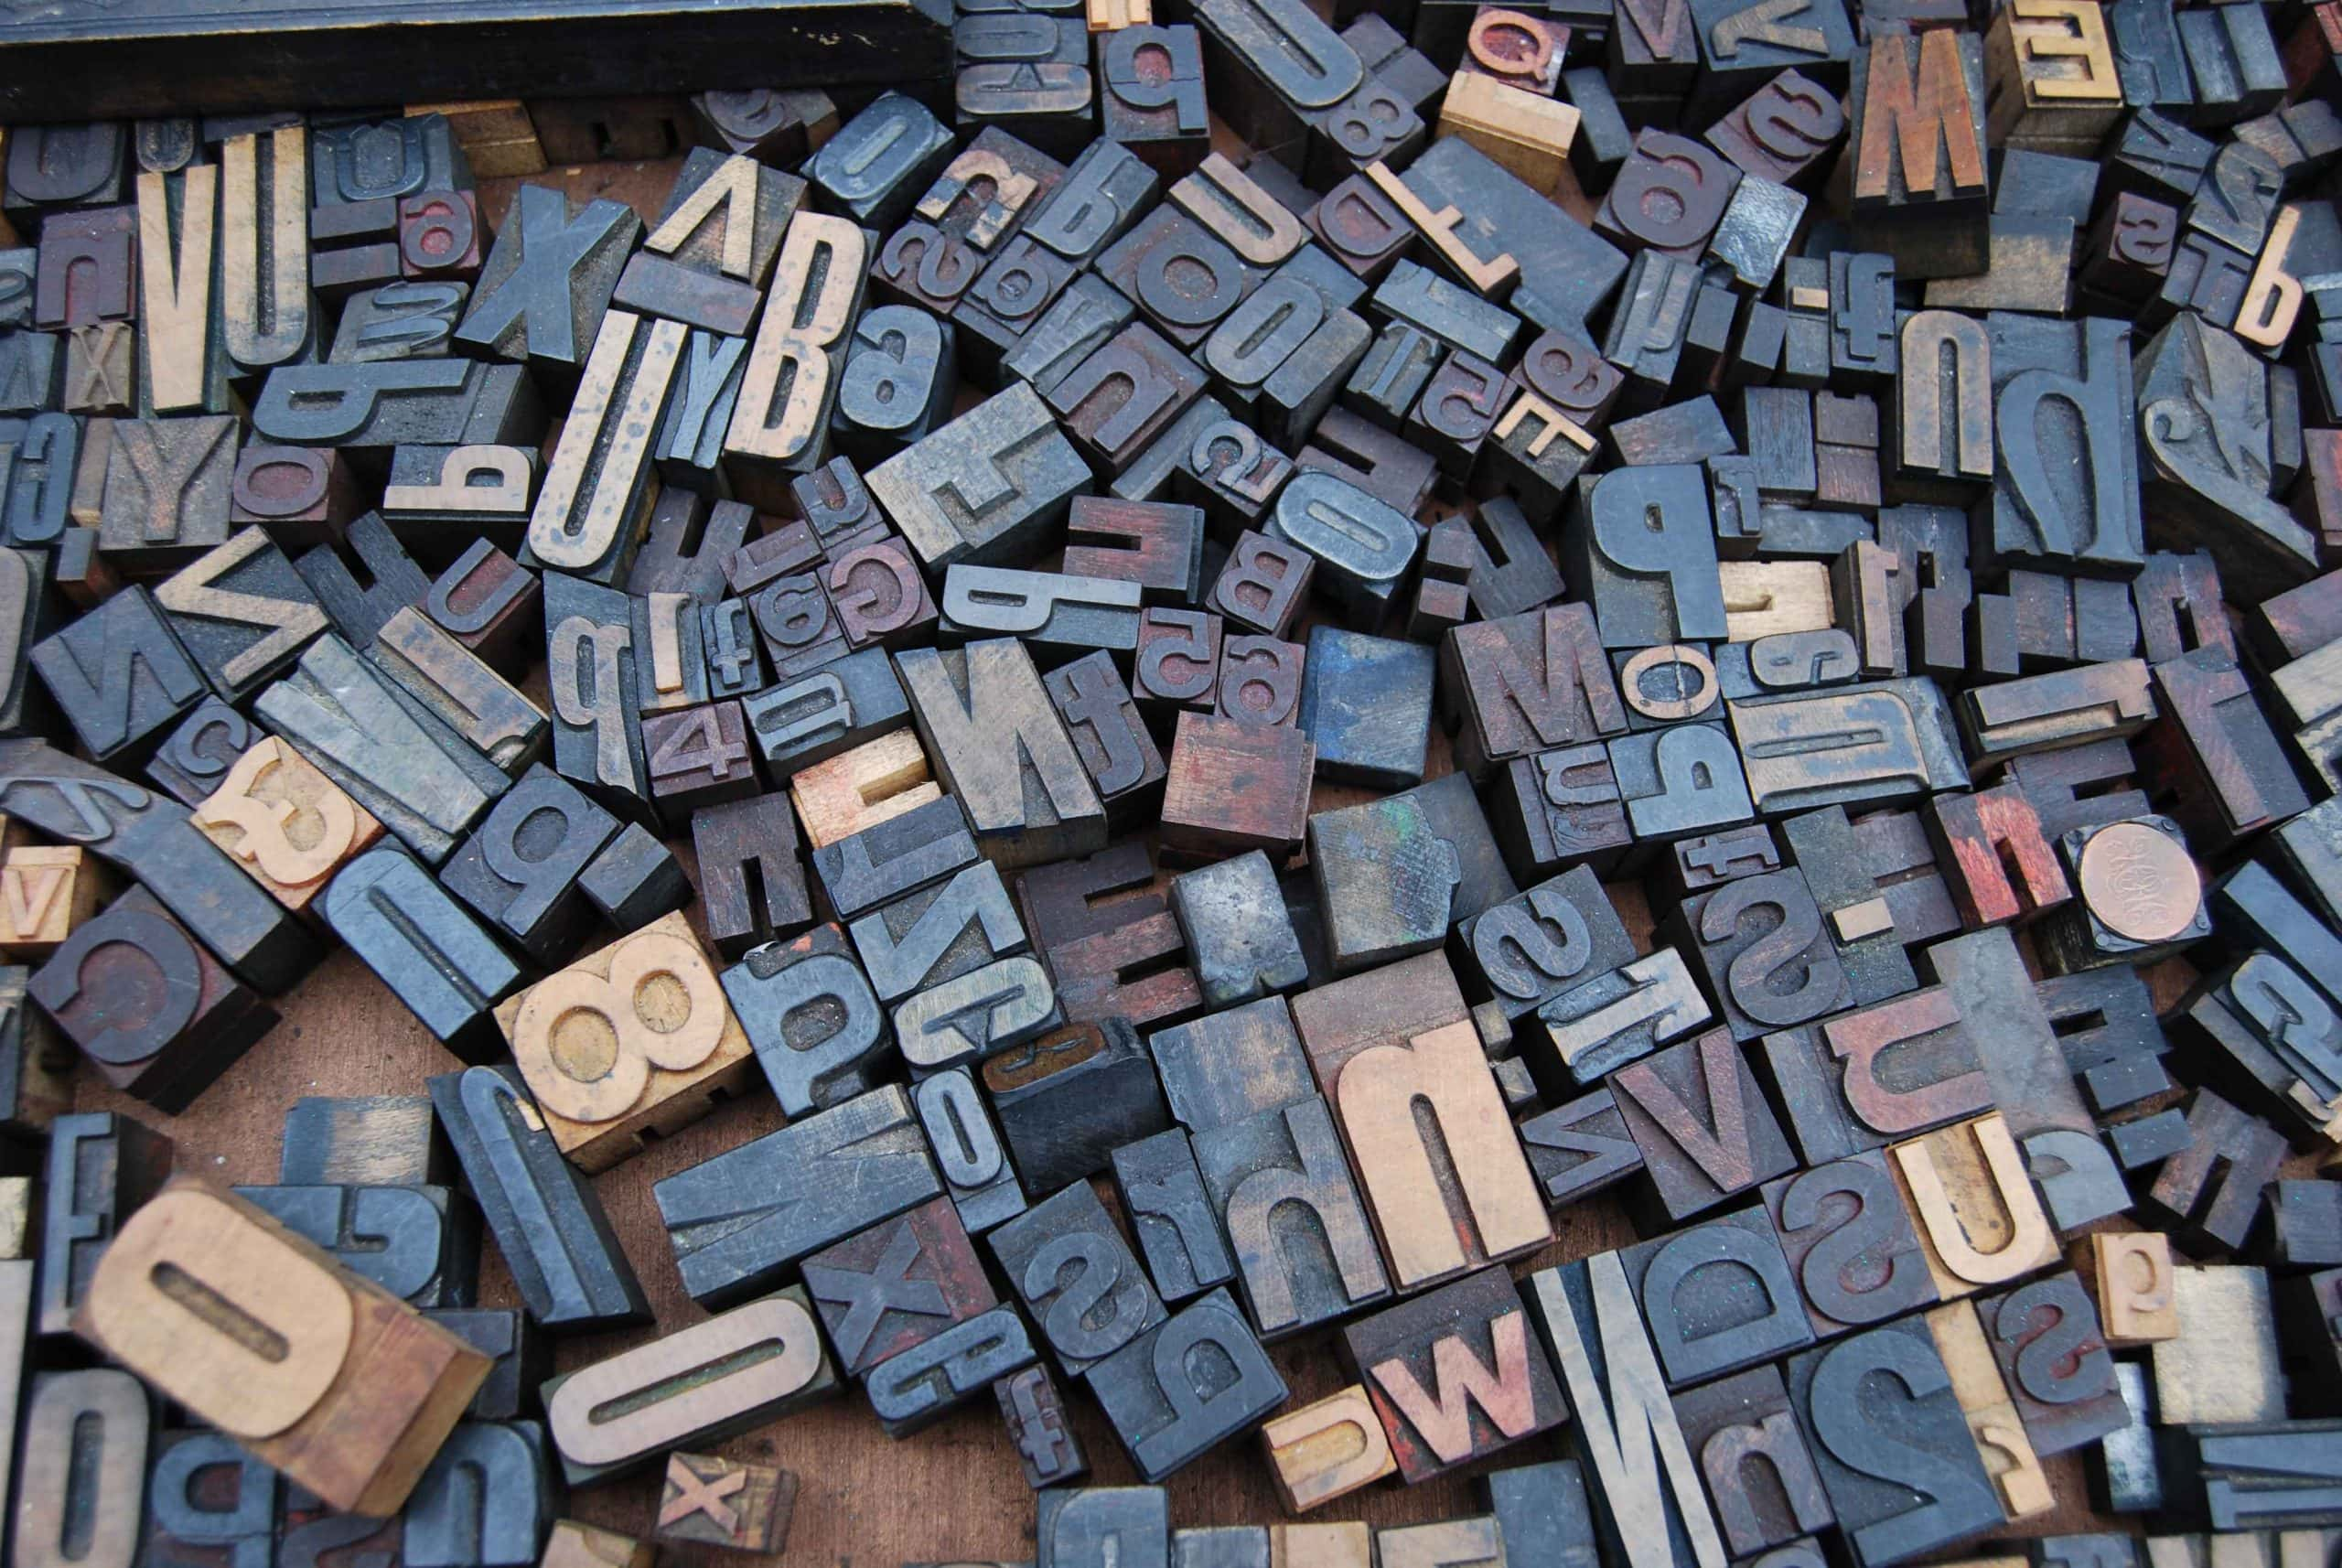 Image of a pile of letter and number stamps. They form no words, just randomly placed.